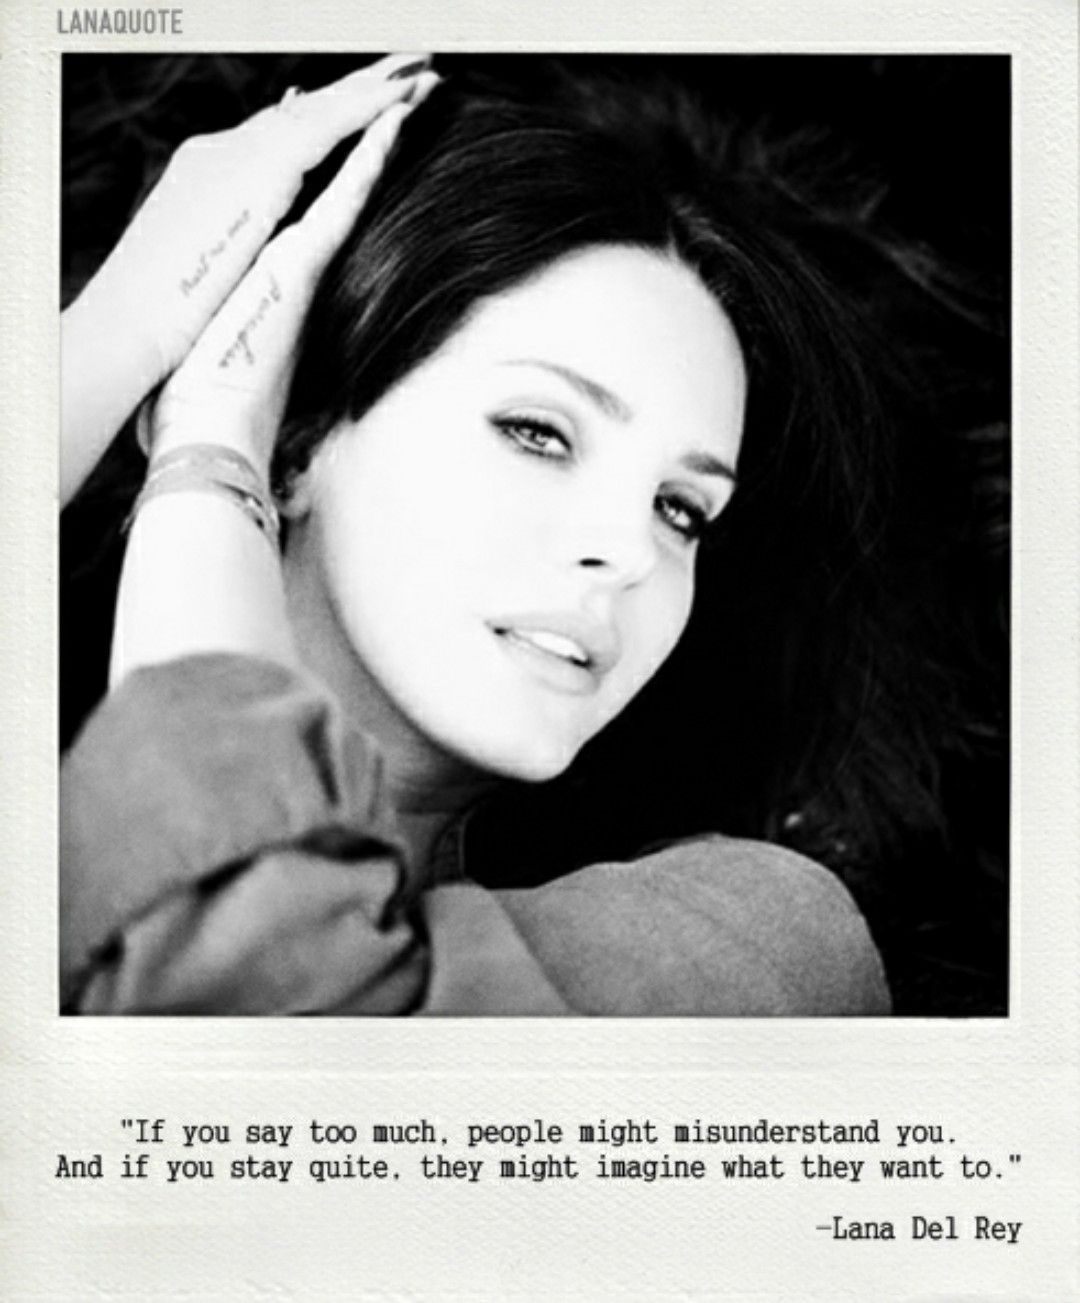 Pin by Ketaki k on Lana Del Rey Quotes and lyrics | Lana ...